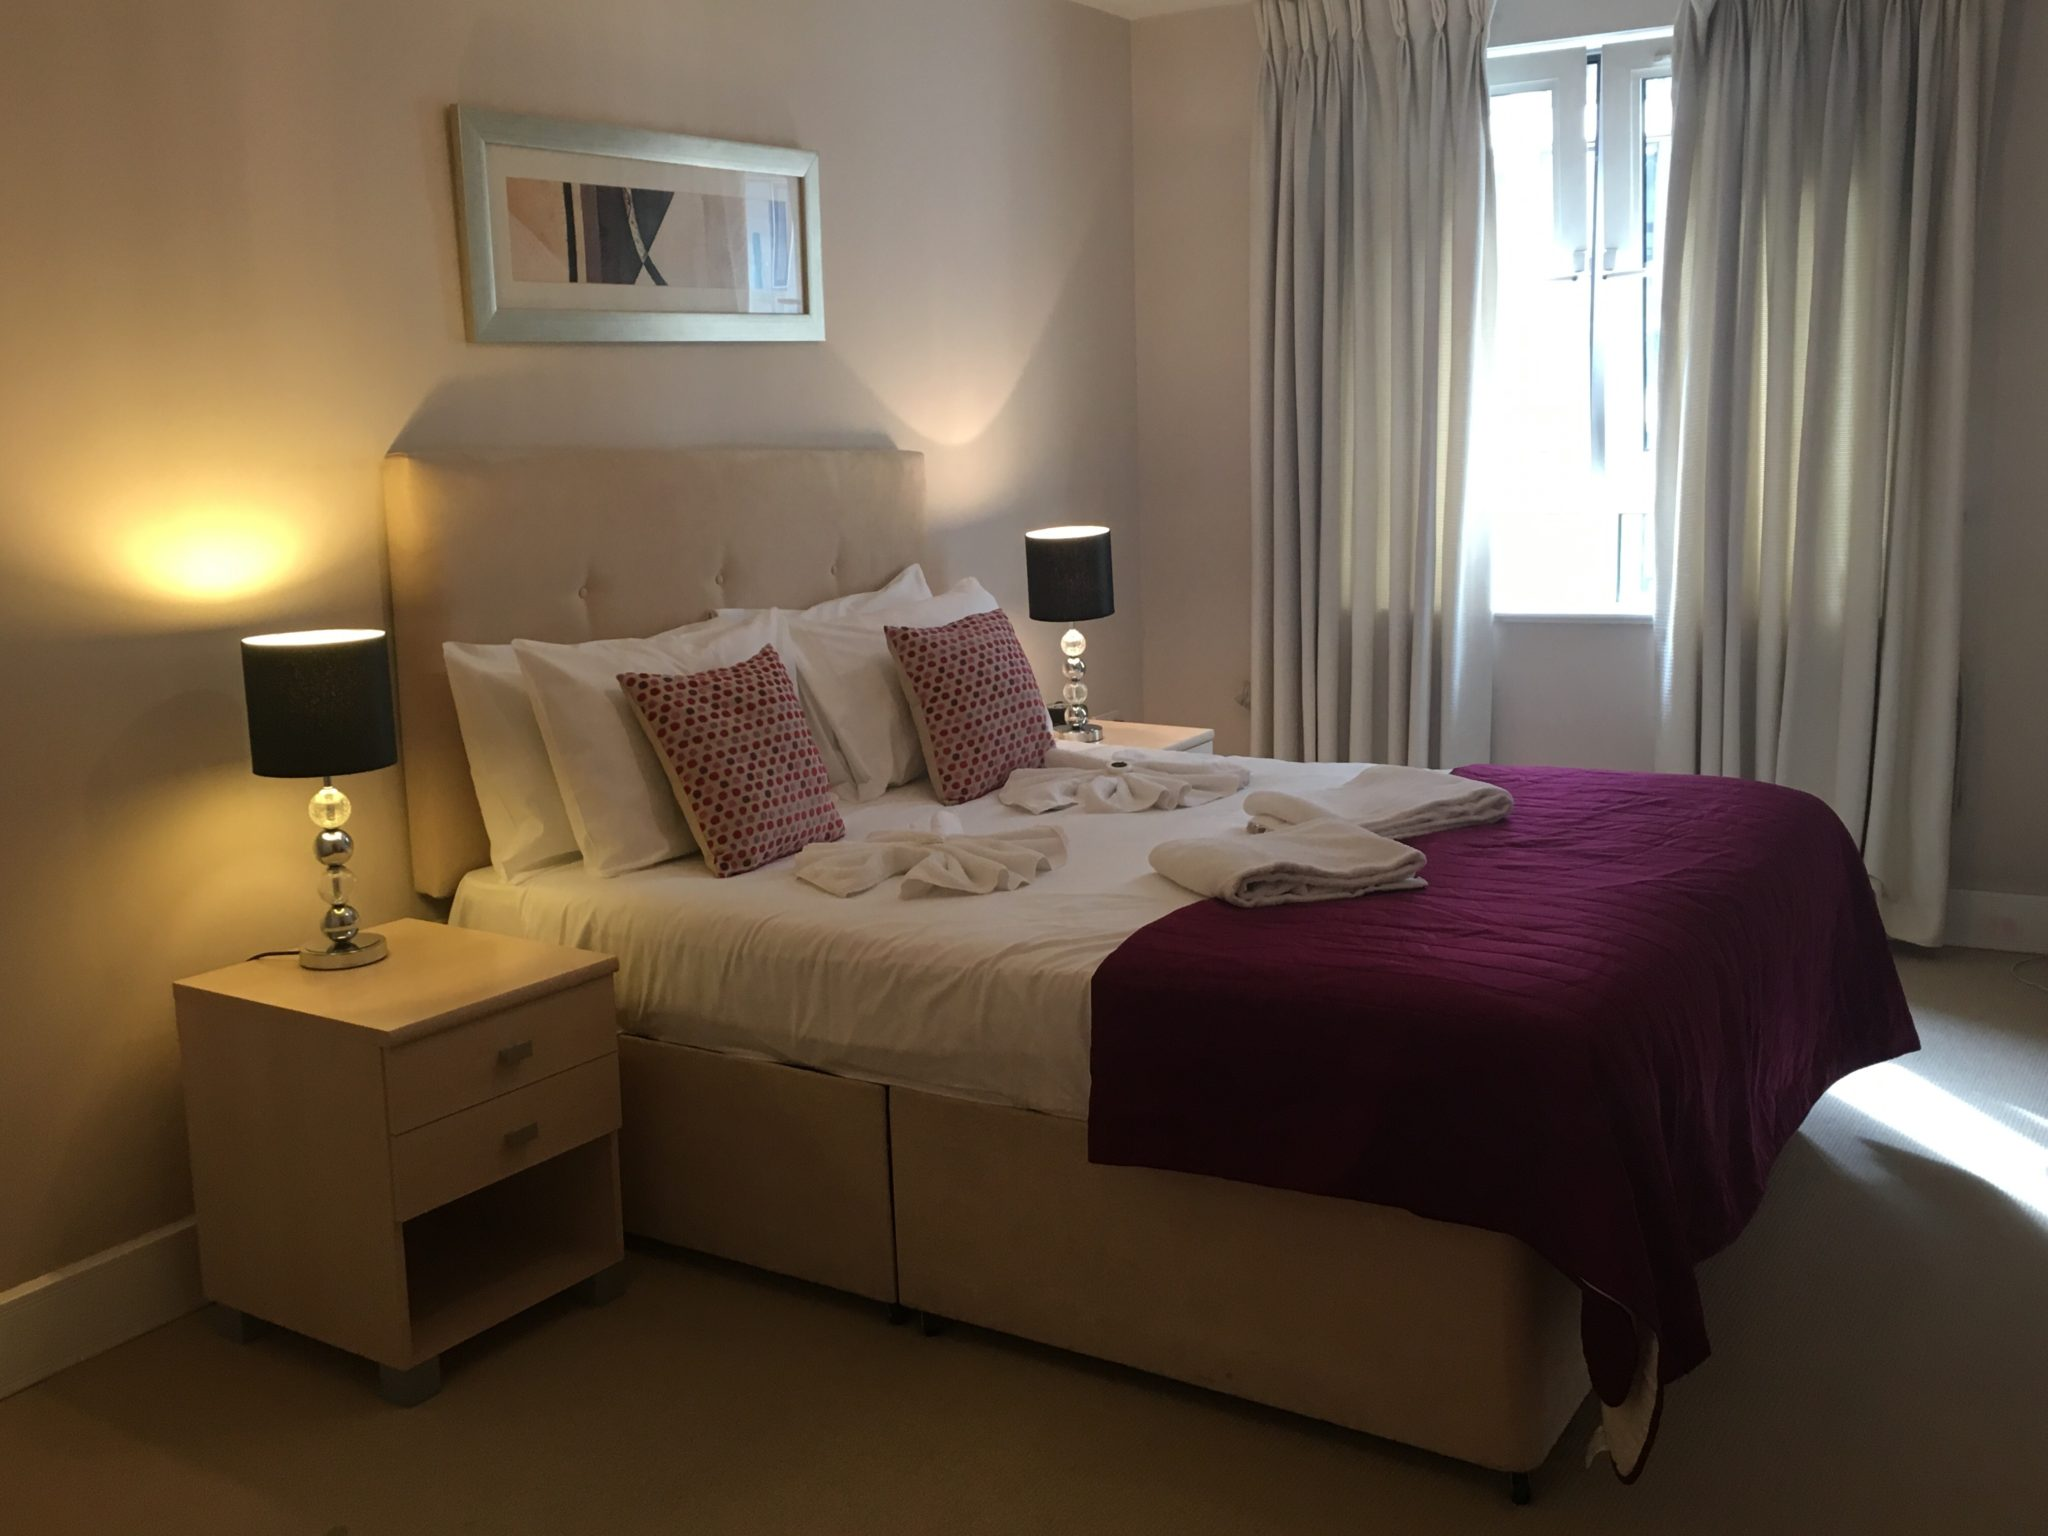 Tower-Hill-Executive-Apartments---Clarendon-Pepys-Street-|-Stylish-Apartments-|-Free-Wifi-&-Weekly-Maid-Service-|0208-6913920|-Urban-Stay